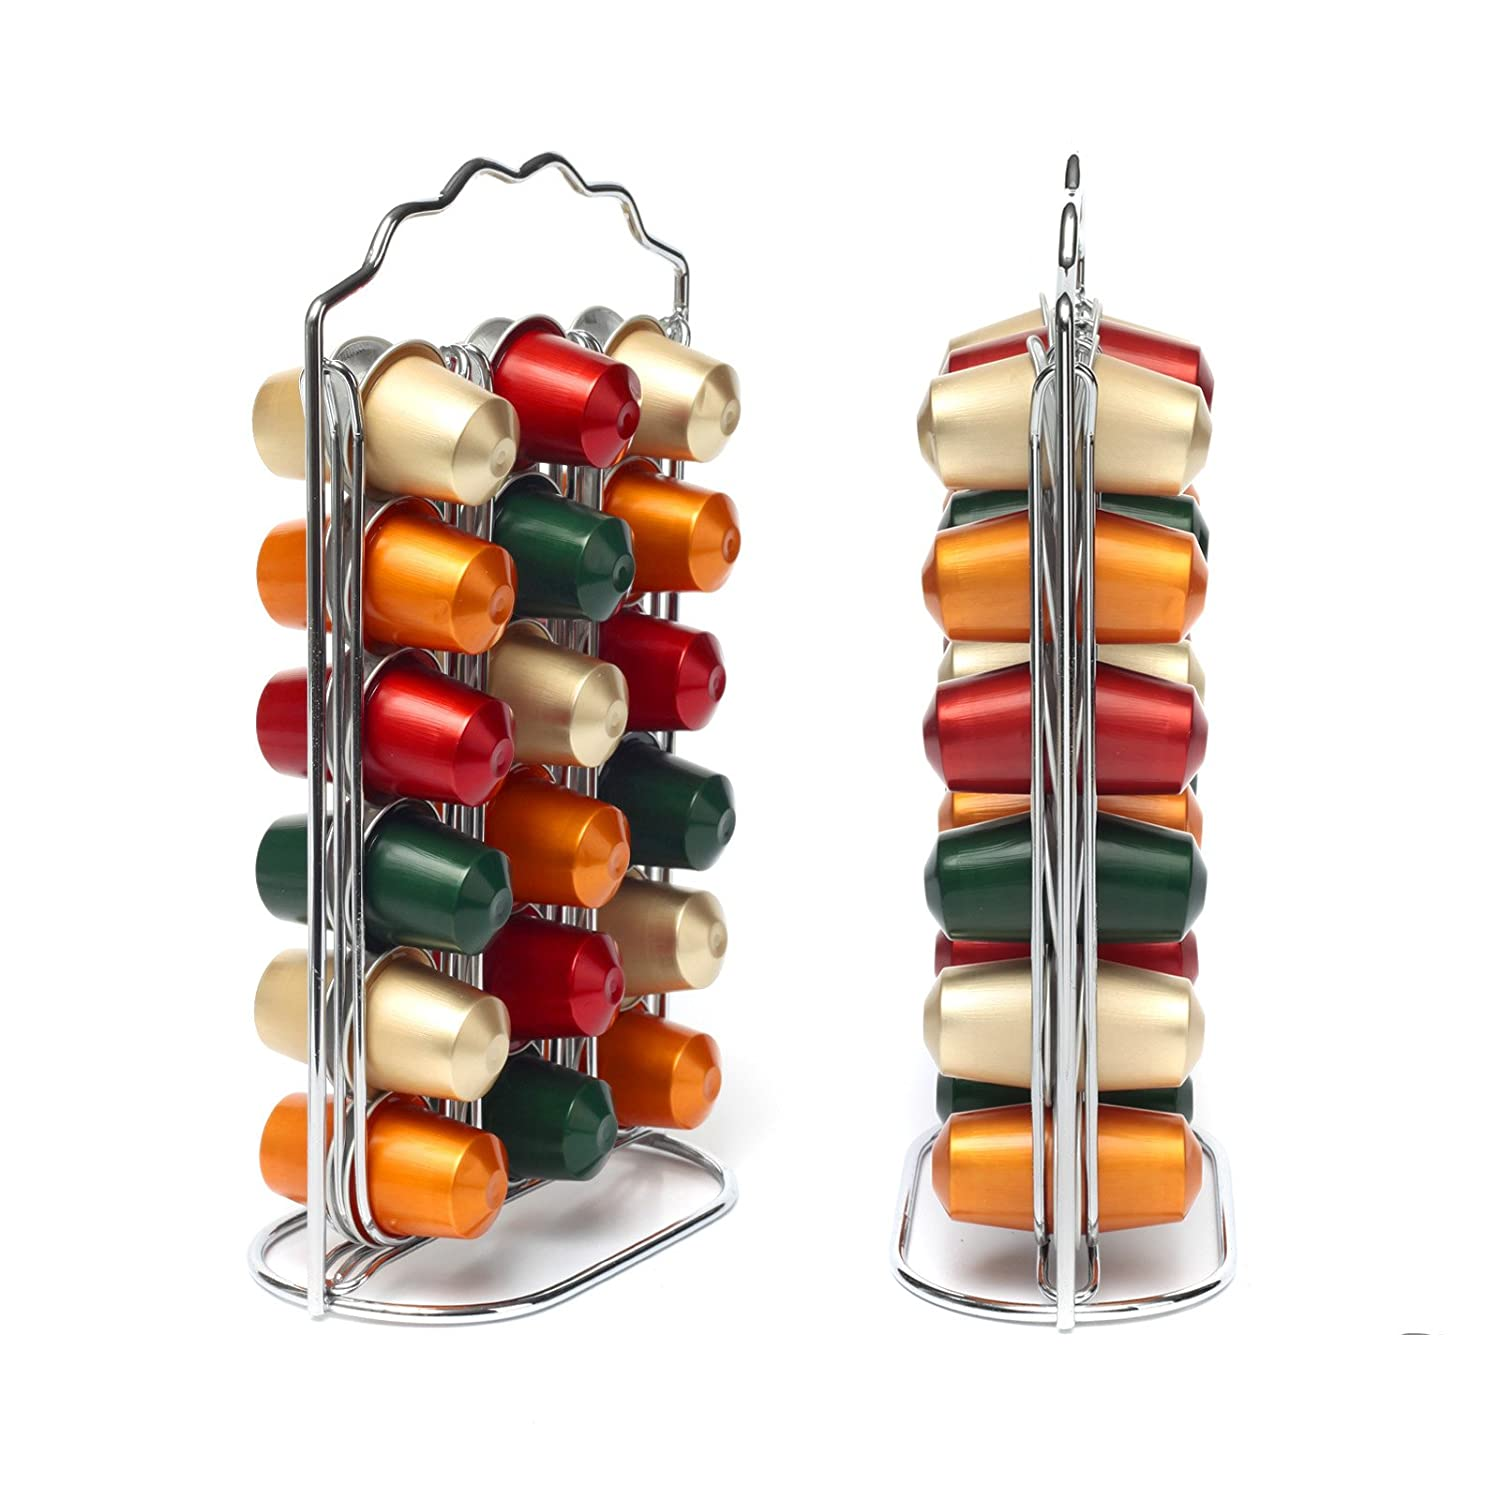 36 chrome coffee capsule pod holder tower stand rack for